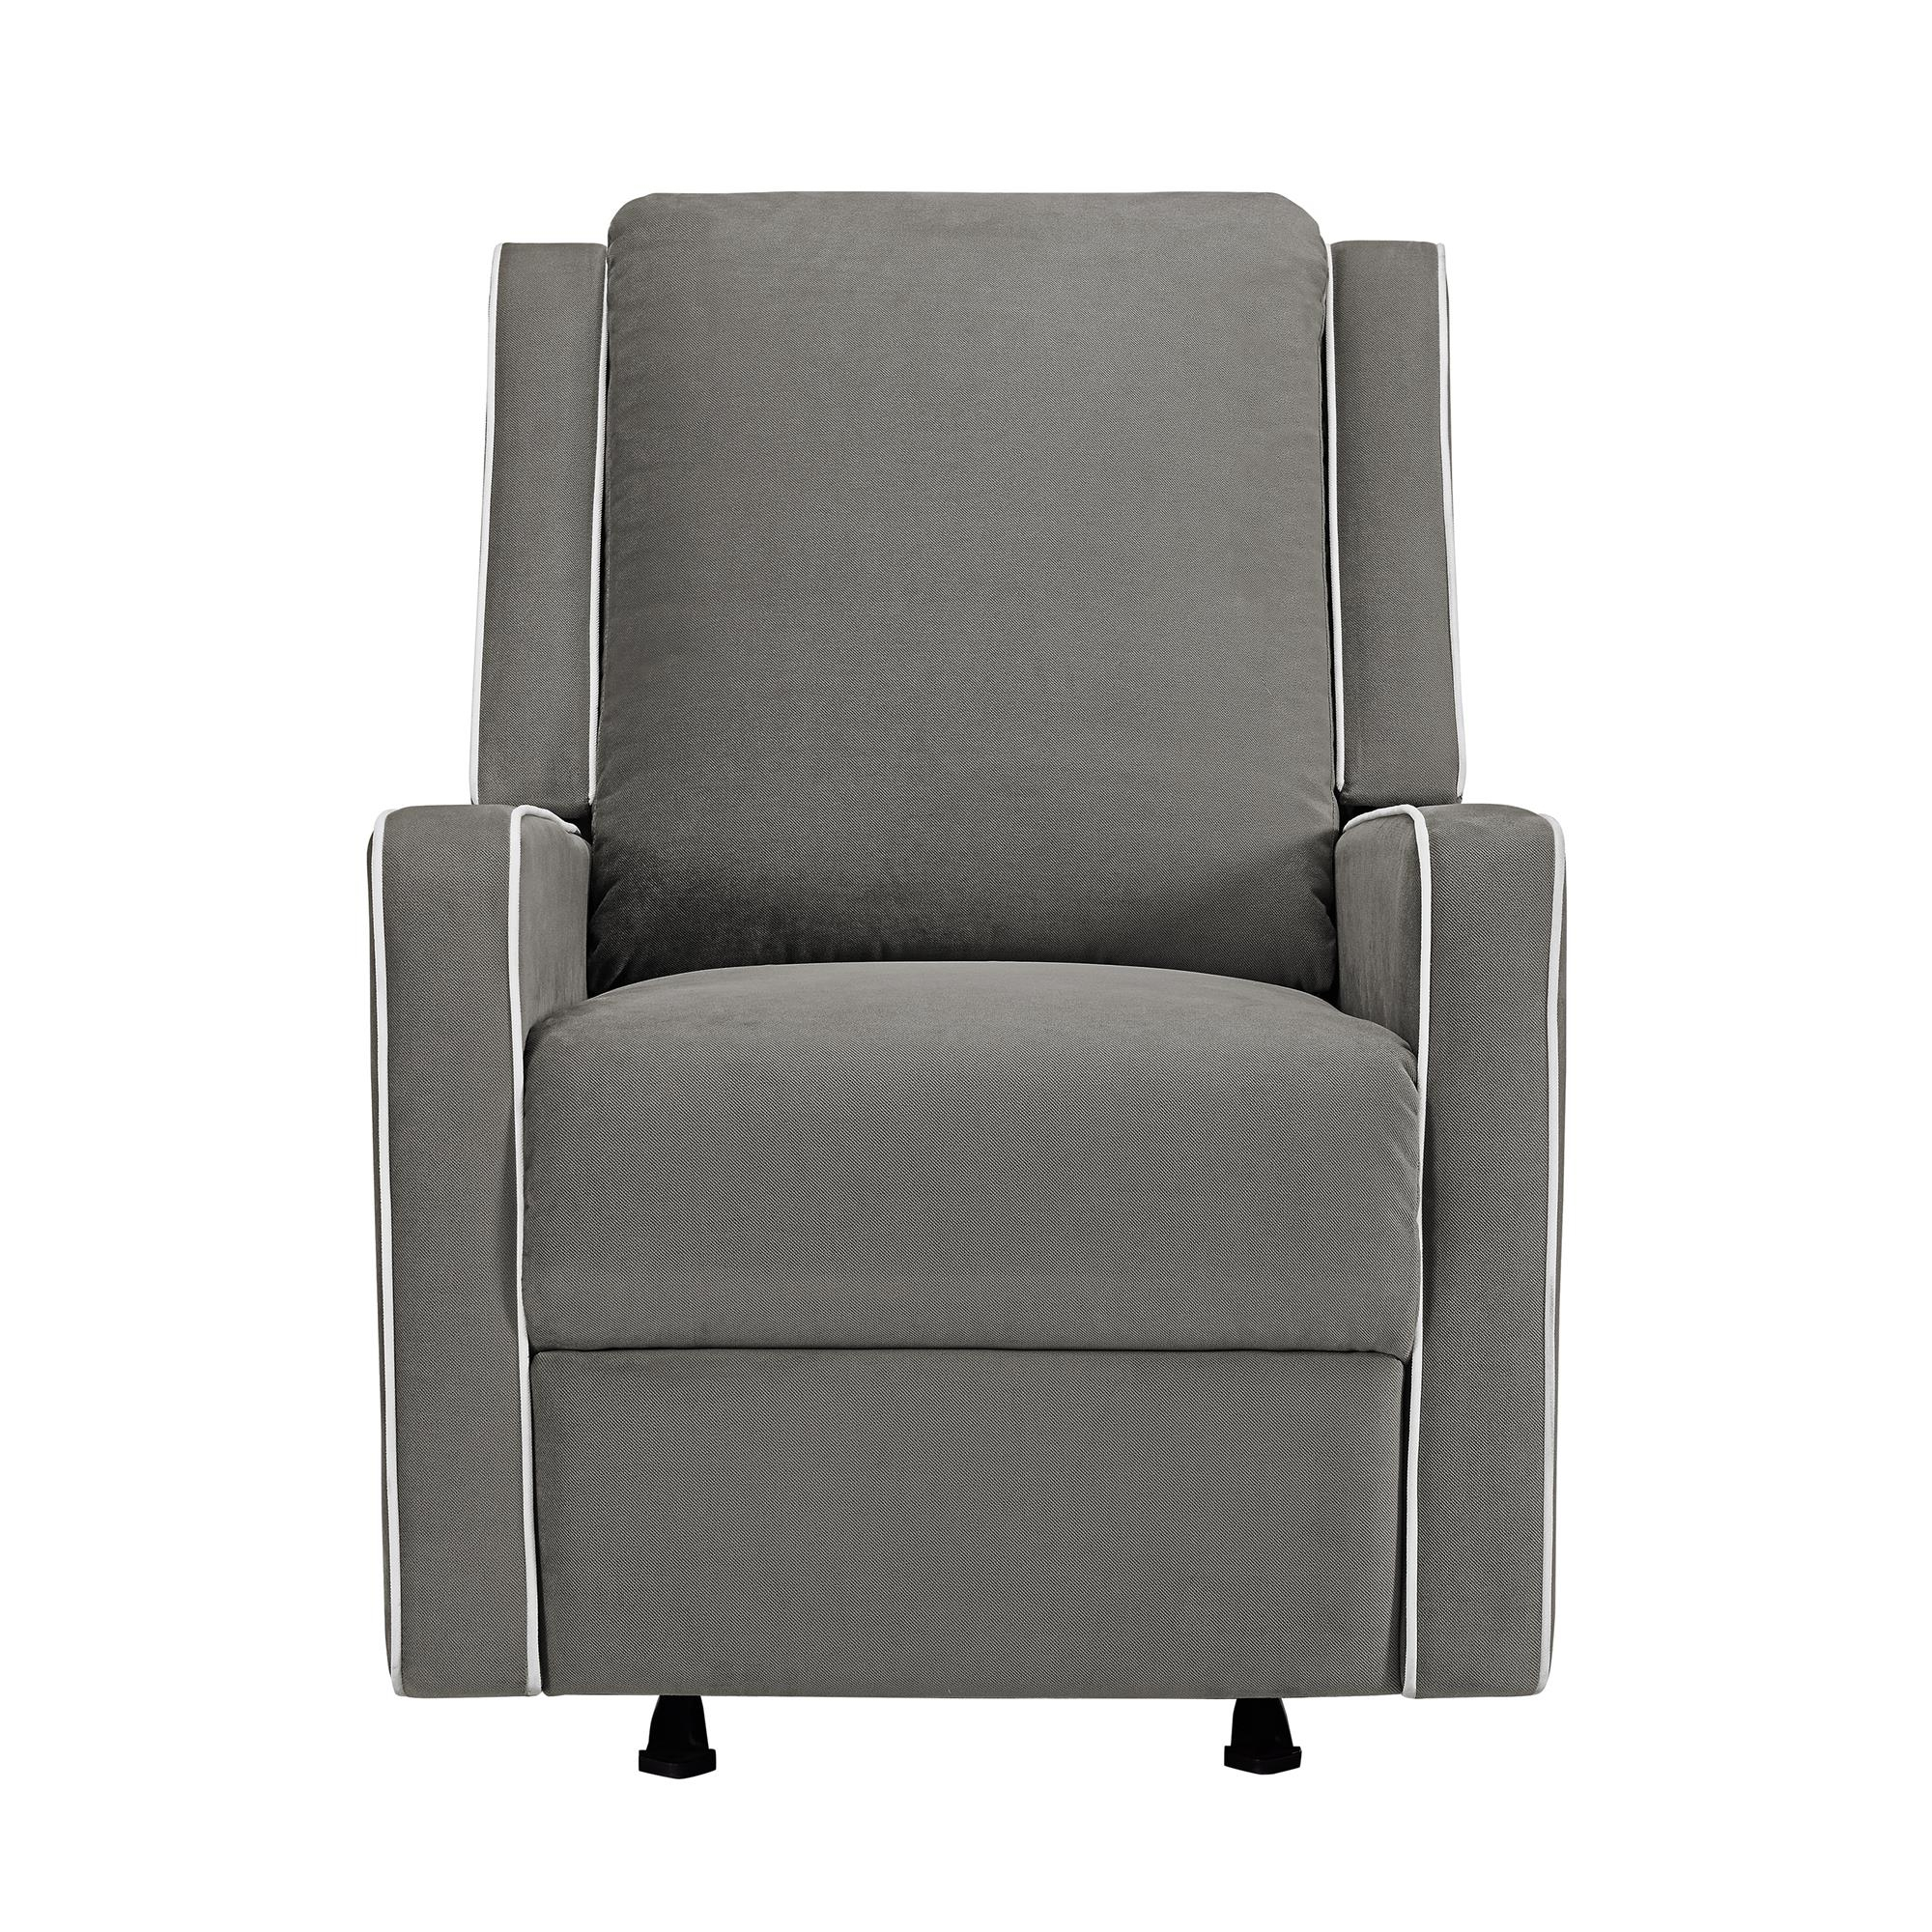 Baby Relax Robyn Rocking Recliner, Graphite Grey – Walmart With Abbey Swivel Glider Recliners (View 12 of 20)